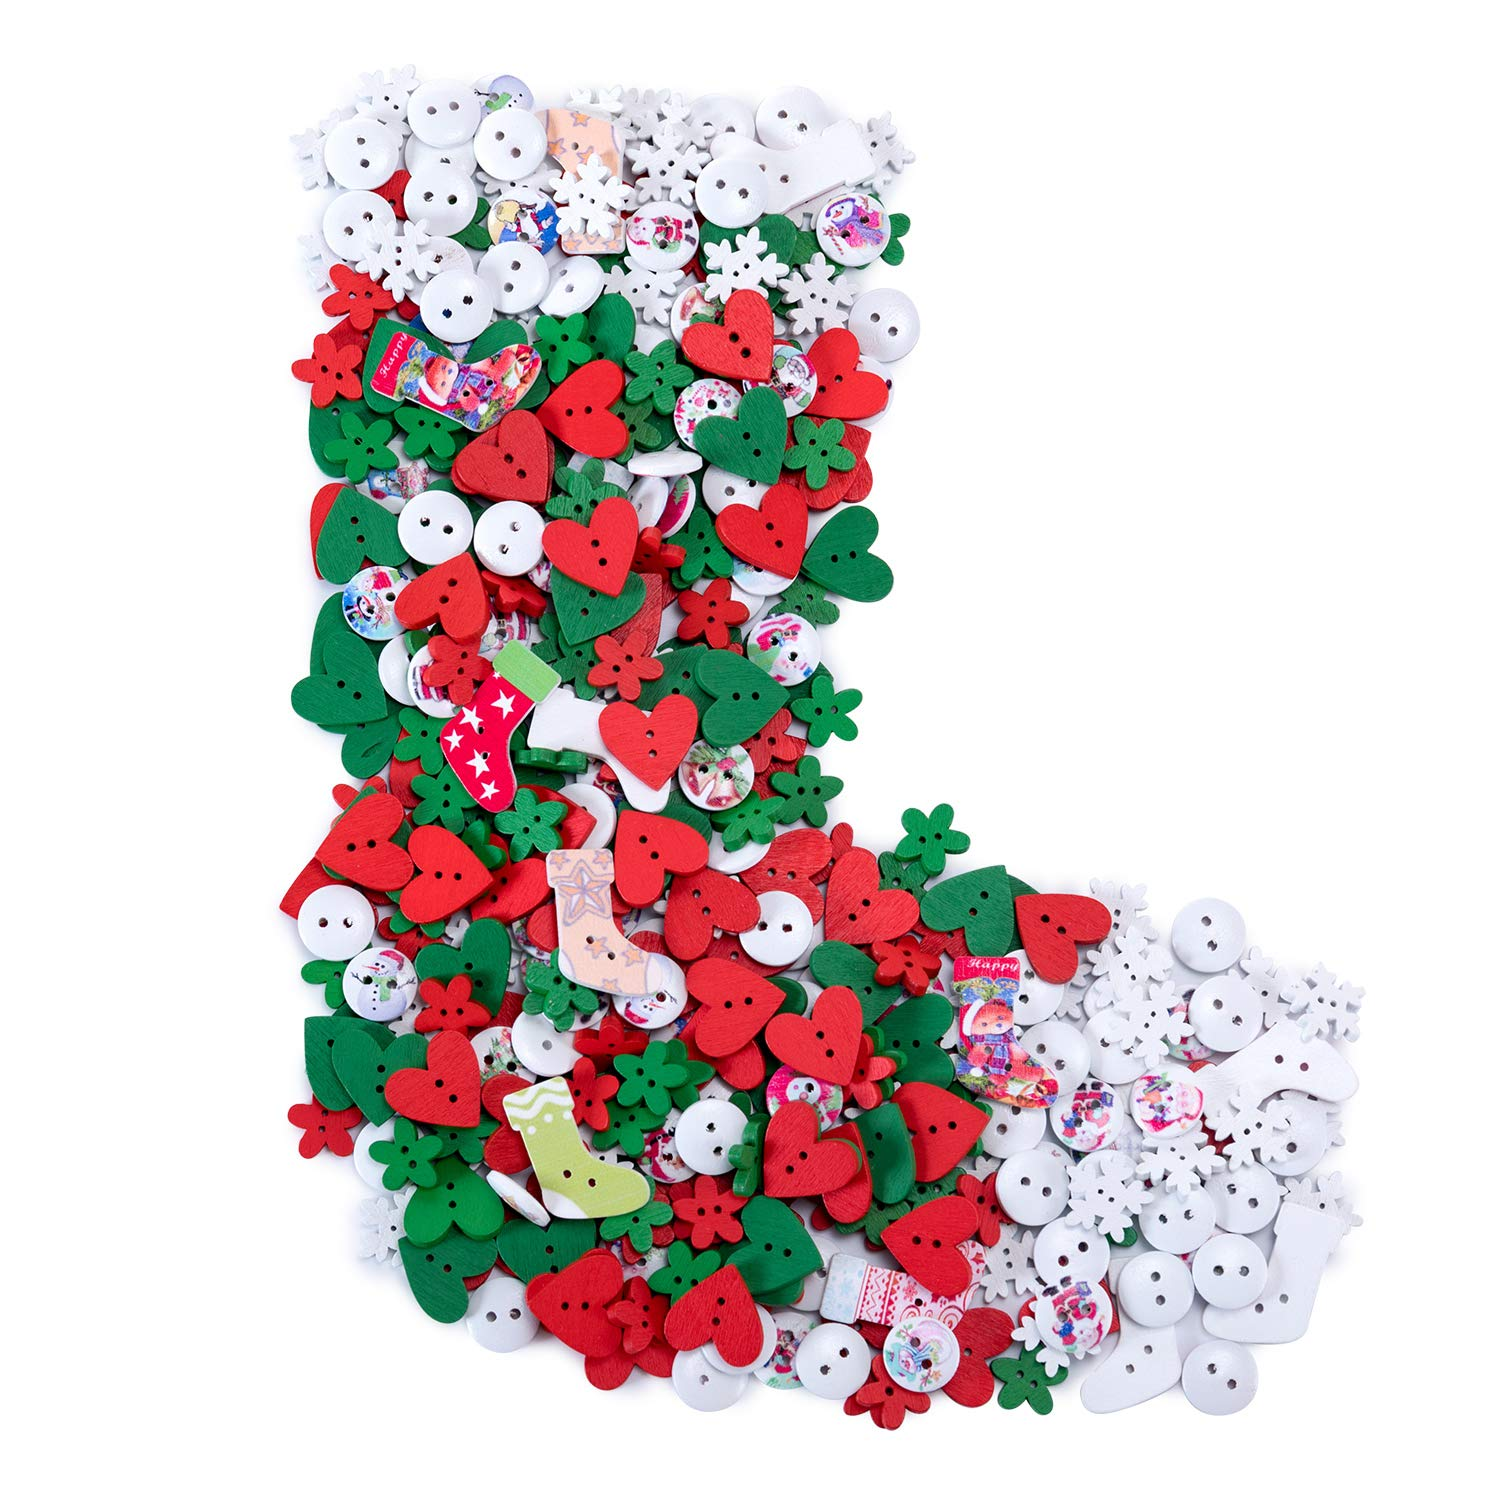 Favourde 120g(450 Pieces) Wooden Buttons Christmas Style Sewing Button DIY Craft Decoration, Mixed Color 2 Holes